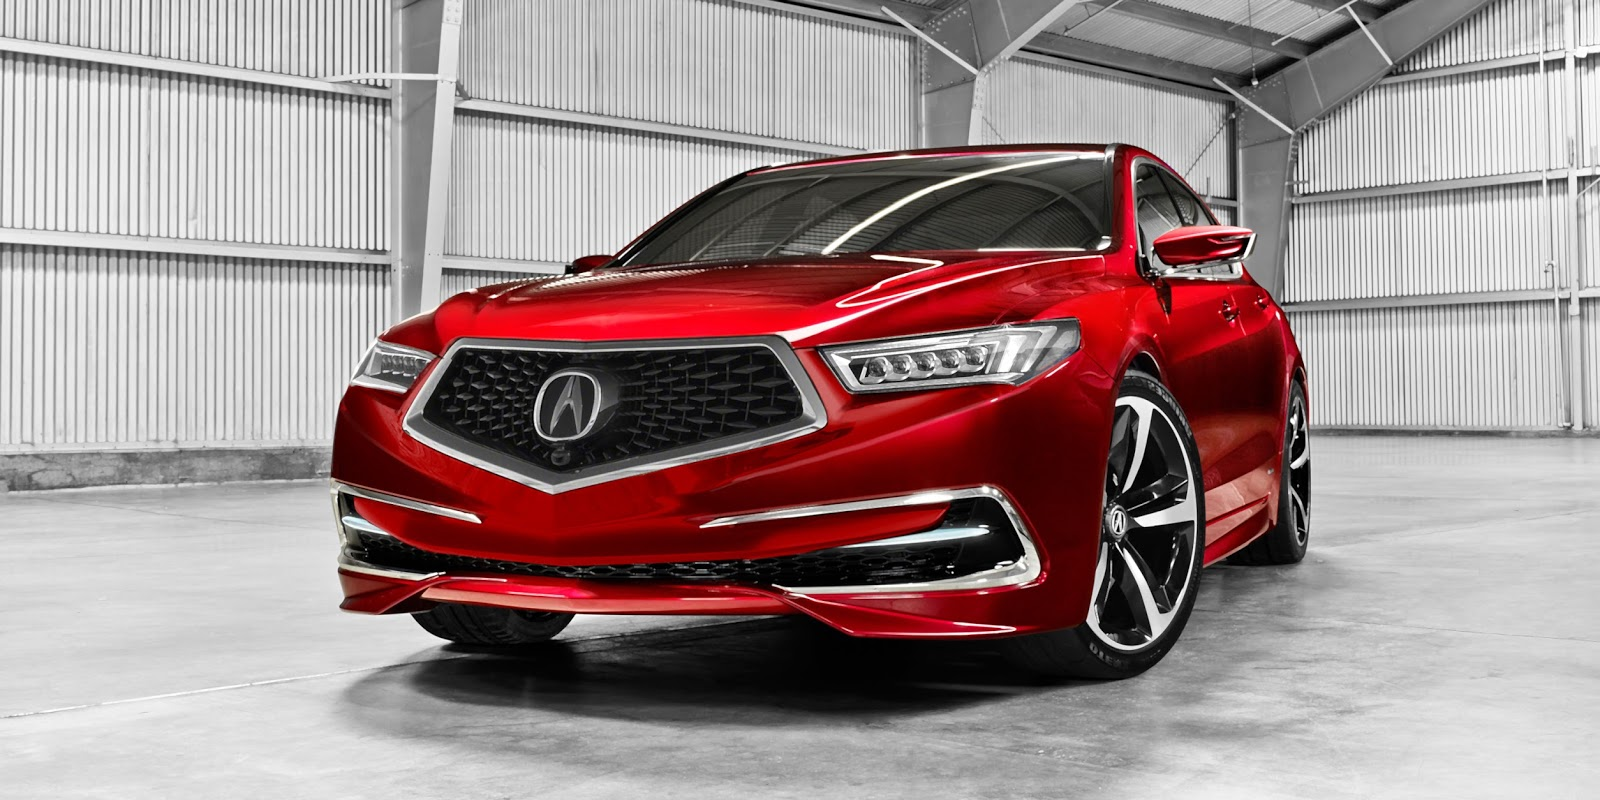 Following the 2017 mdx facelift and the new cdx crossover just released in china recently the new pentagonal grille from the acura precision concept seems